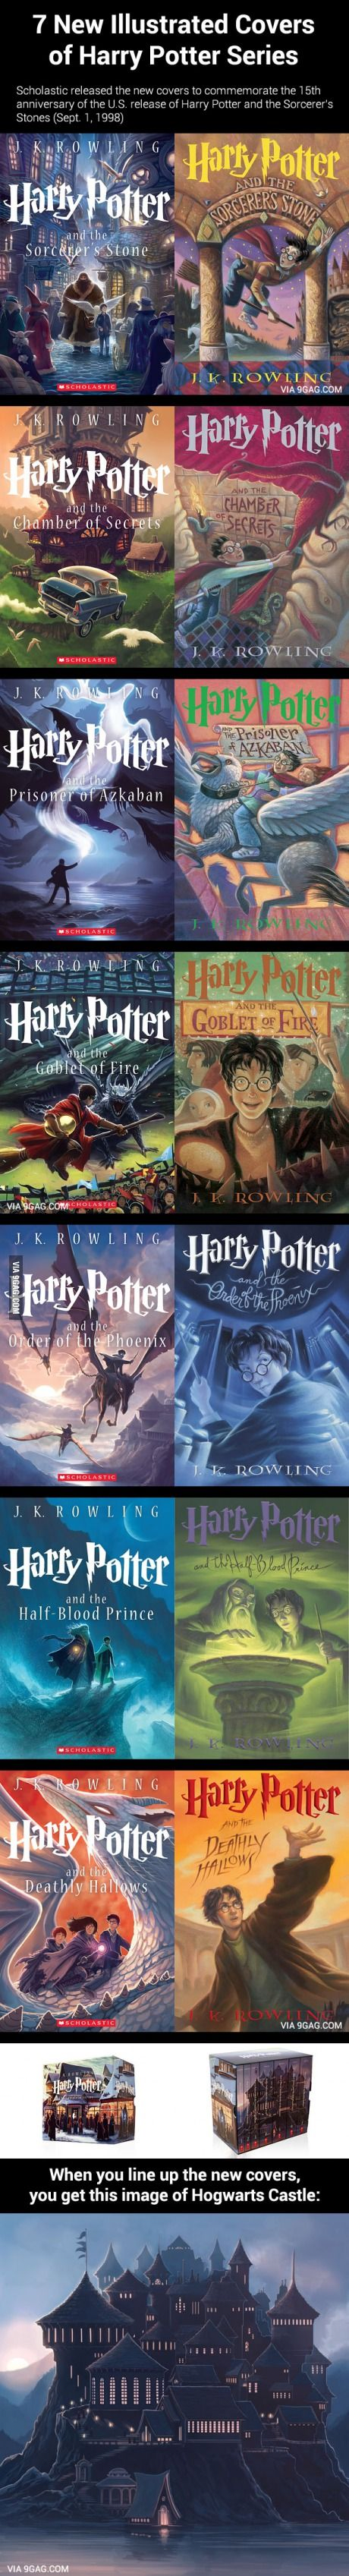 Illustrated Book Cover Ideas : Best ideas about harry potter illustrations on